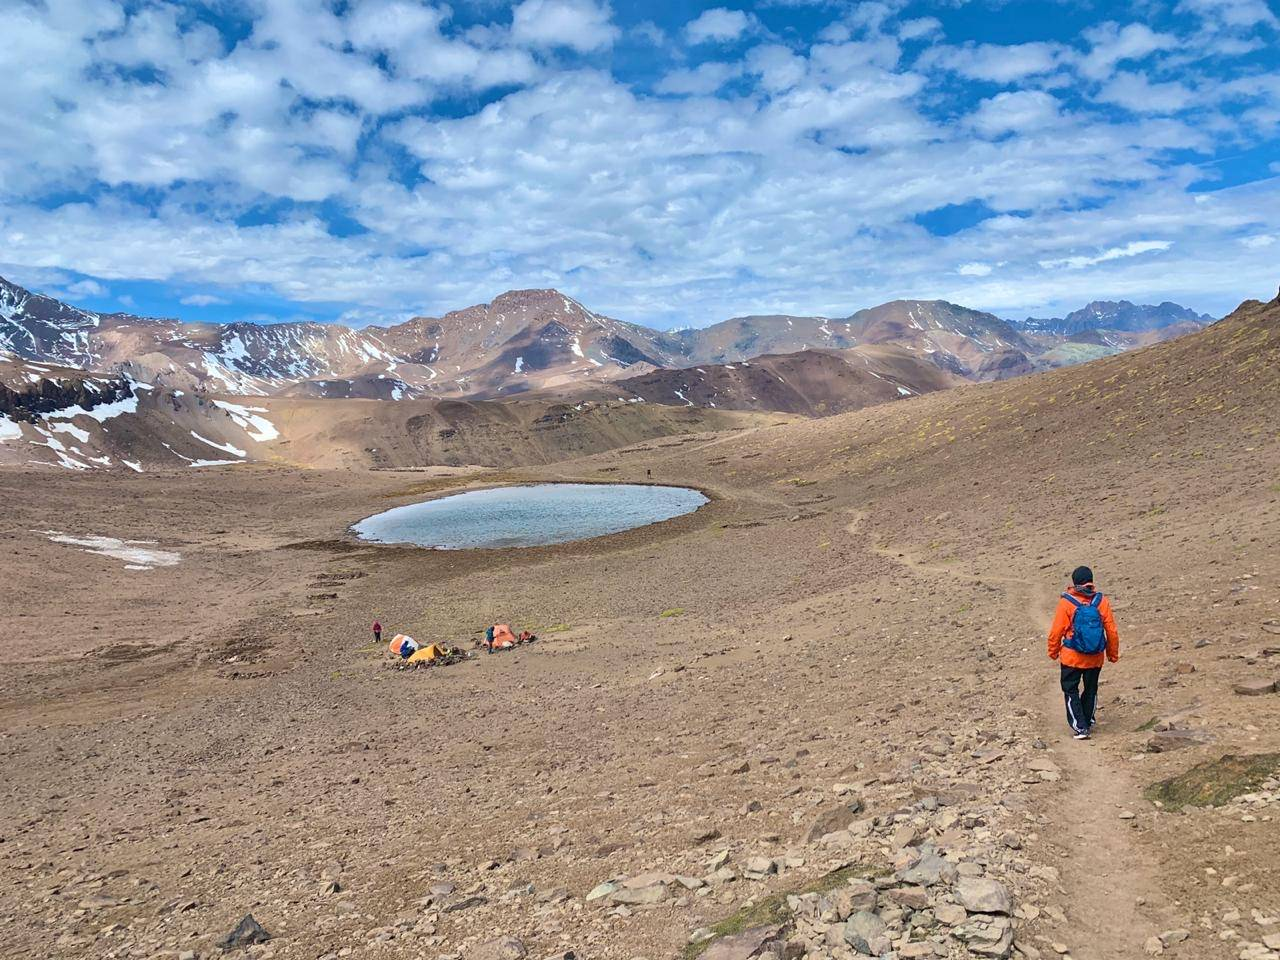 Approaching to the lagoon at 3500 meters /11500 ft